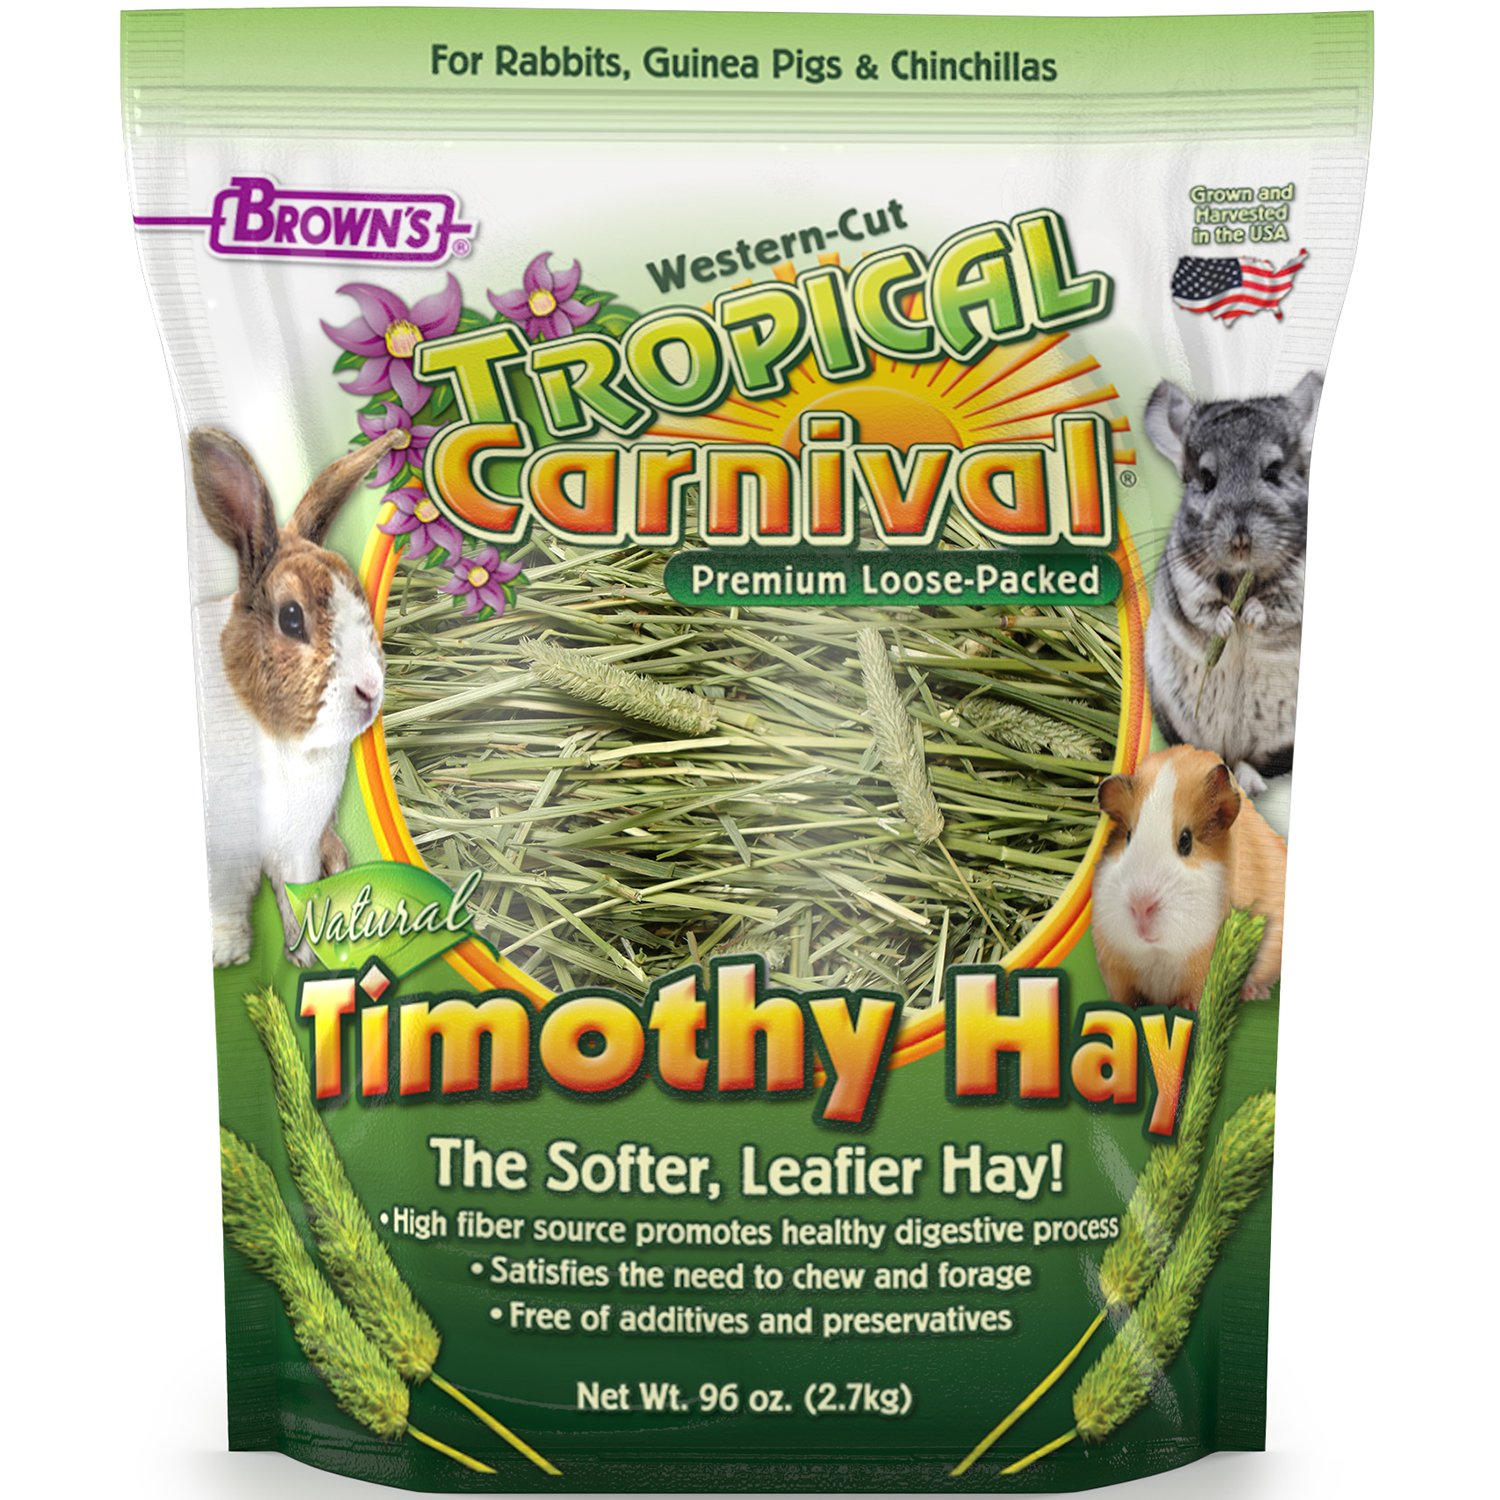 Tropical Carnival F.M. Brown's Natural Timothy Hay for Guinea Pigs, Rabbits, and Other Small Animals, with High Fiber for Healthy Digestion by Tropical Carnival (Image #1)